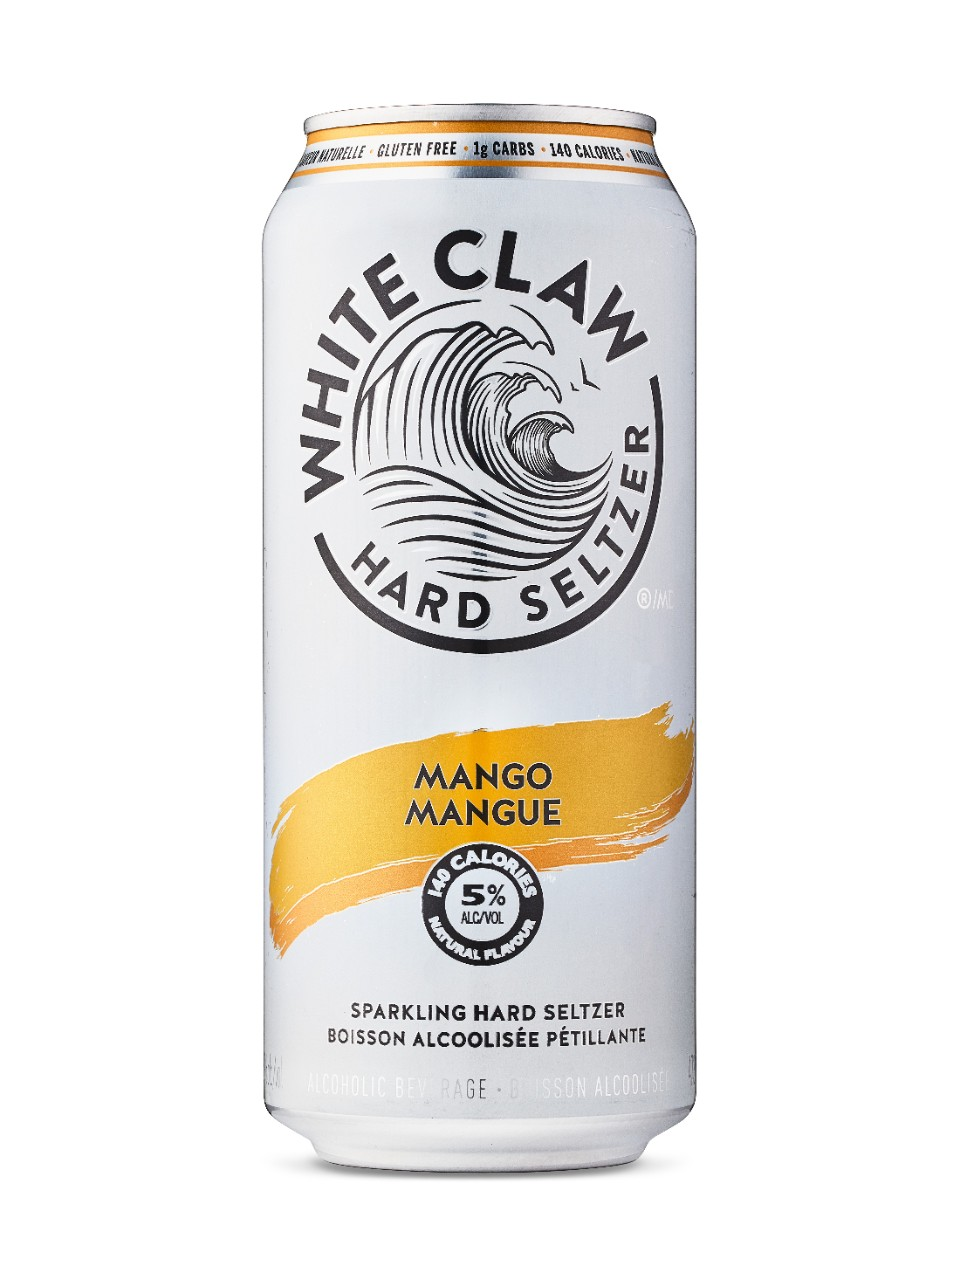 White Claw Hard Seltzer Mango from LCBO